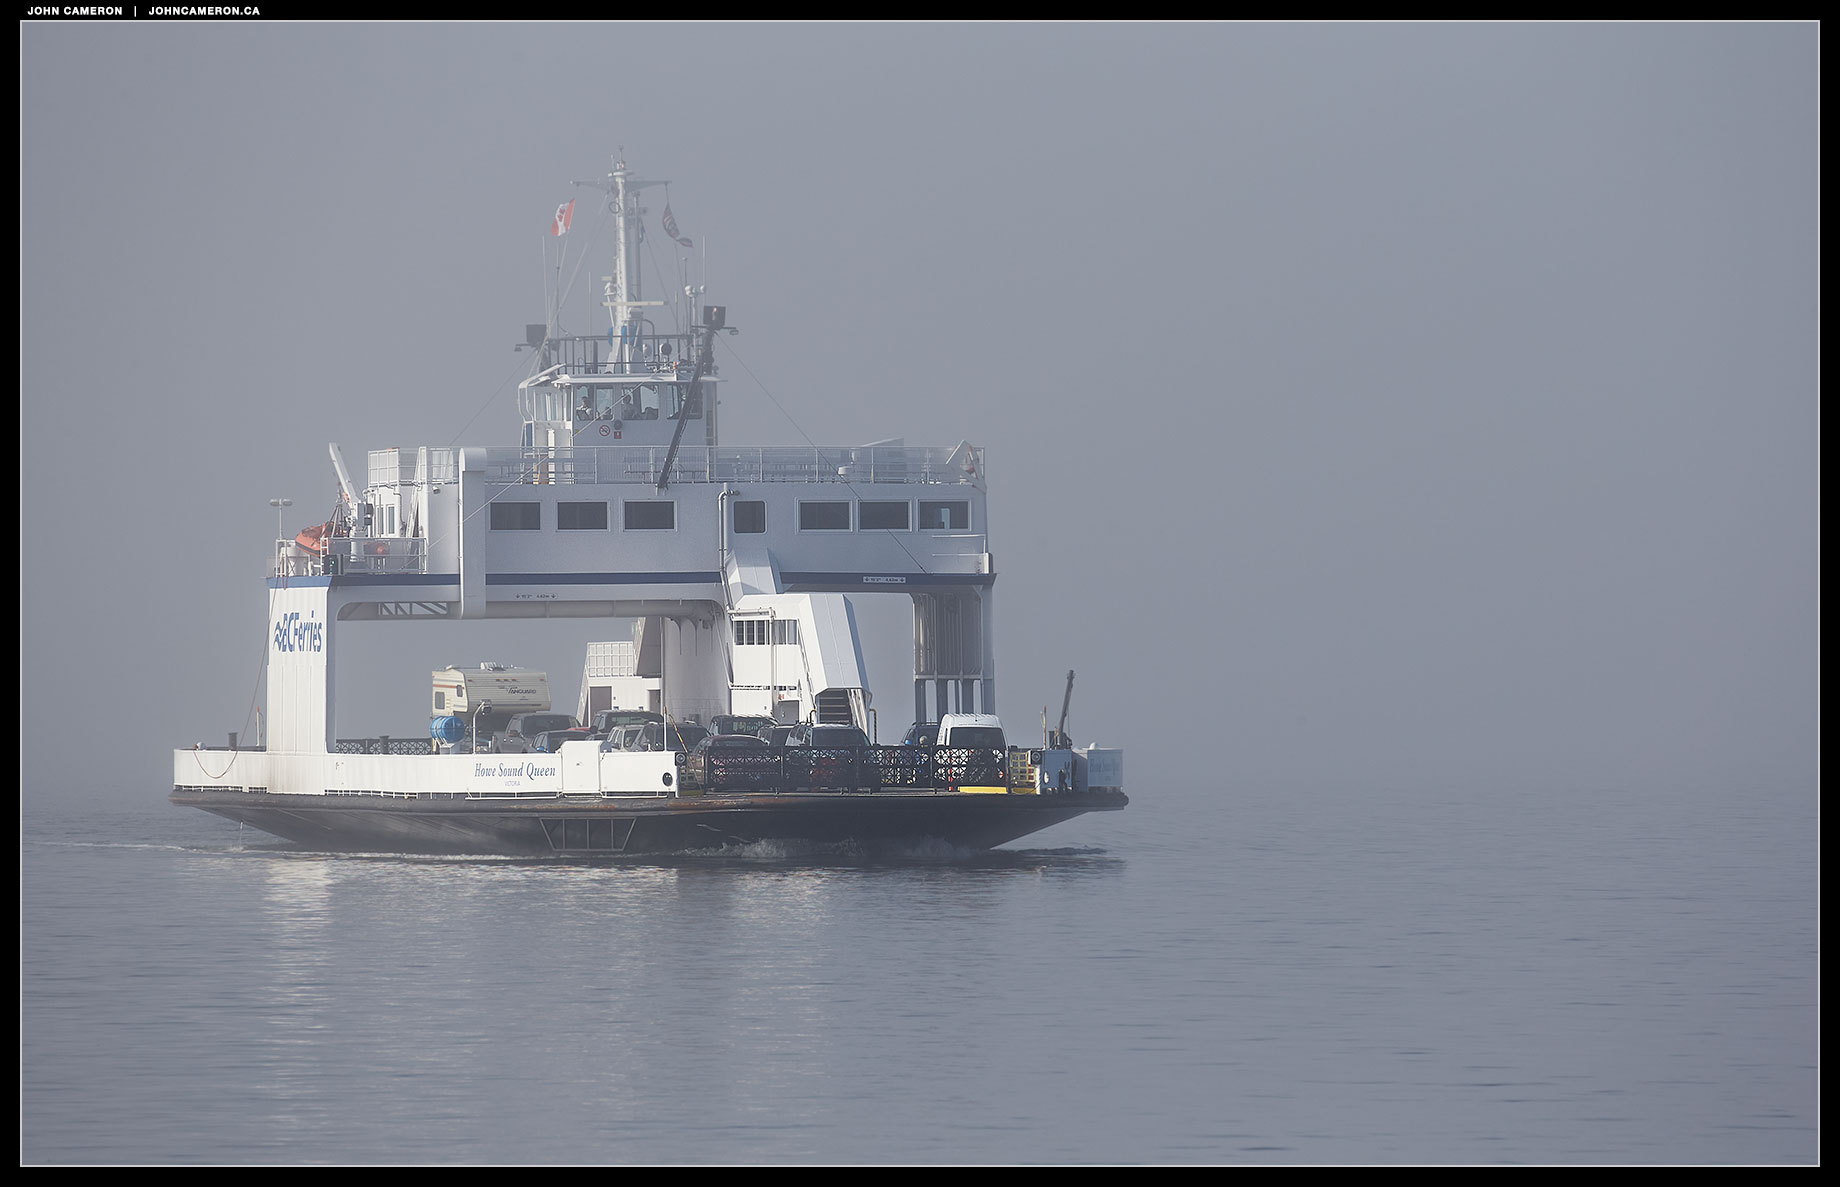 Howe Sound Queen in Fog